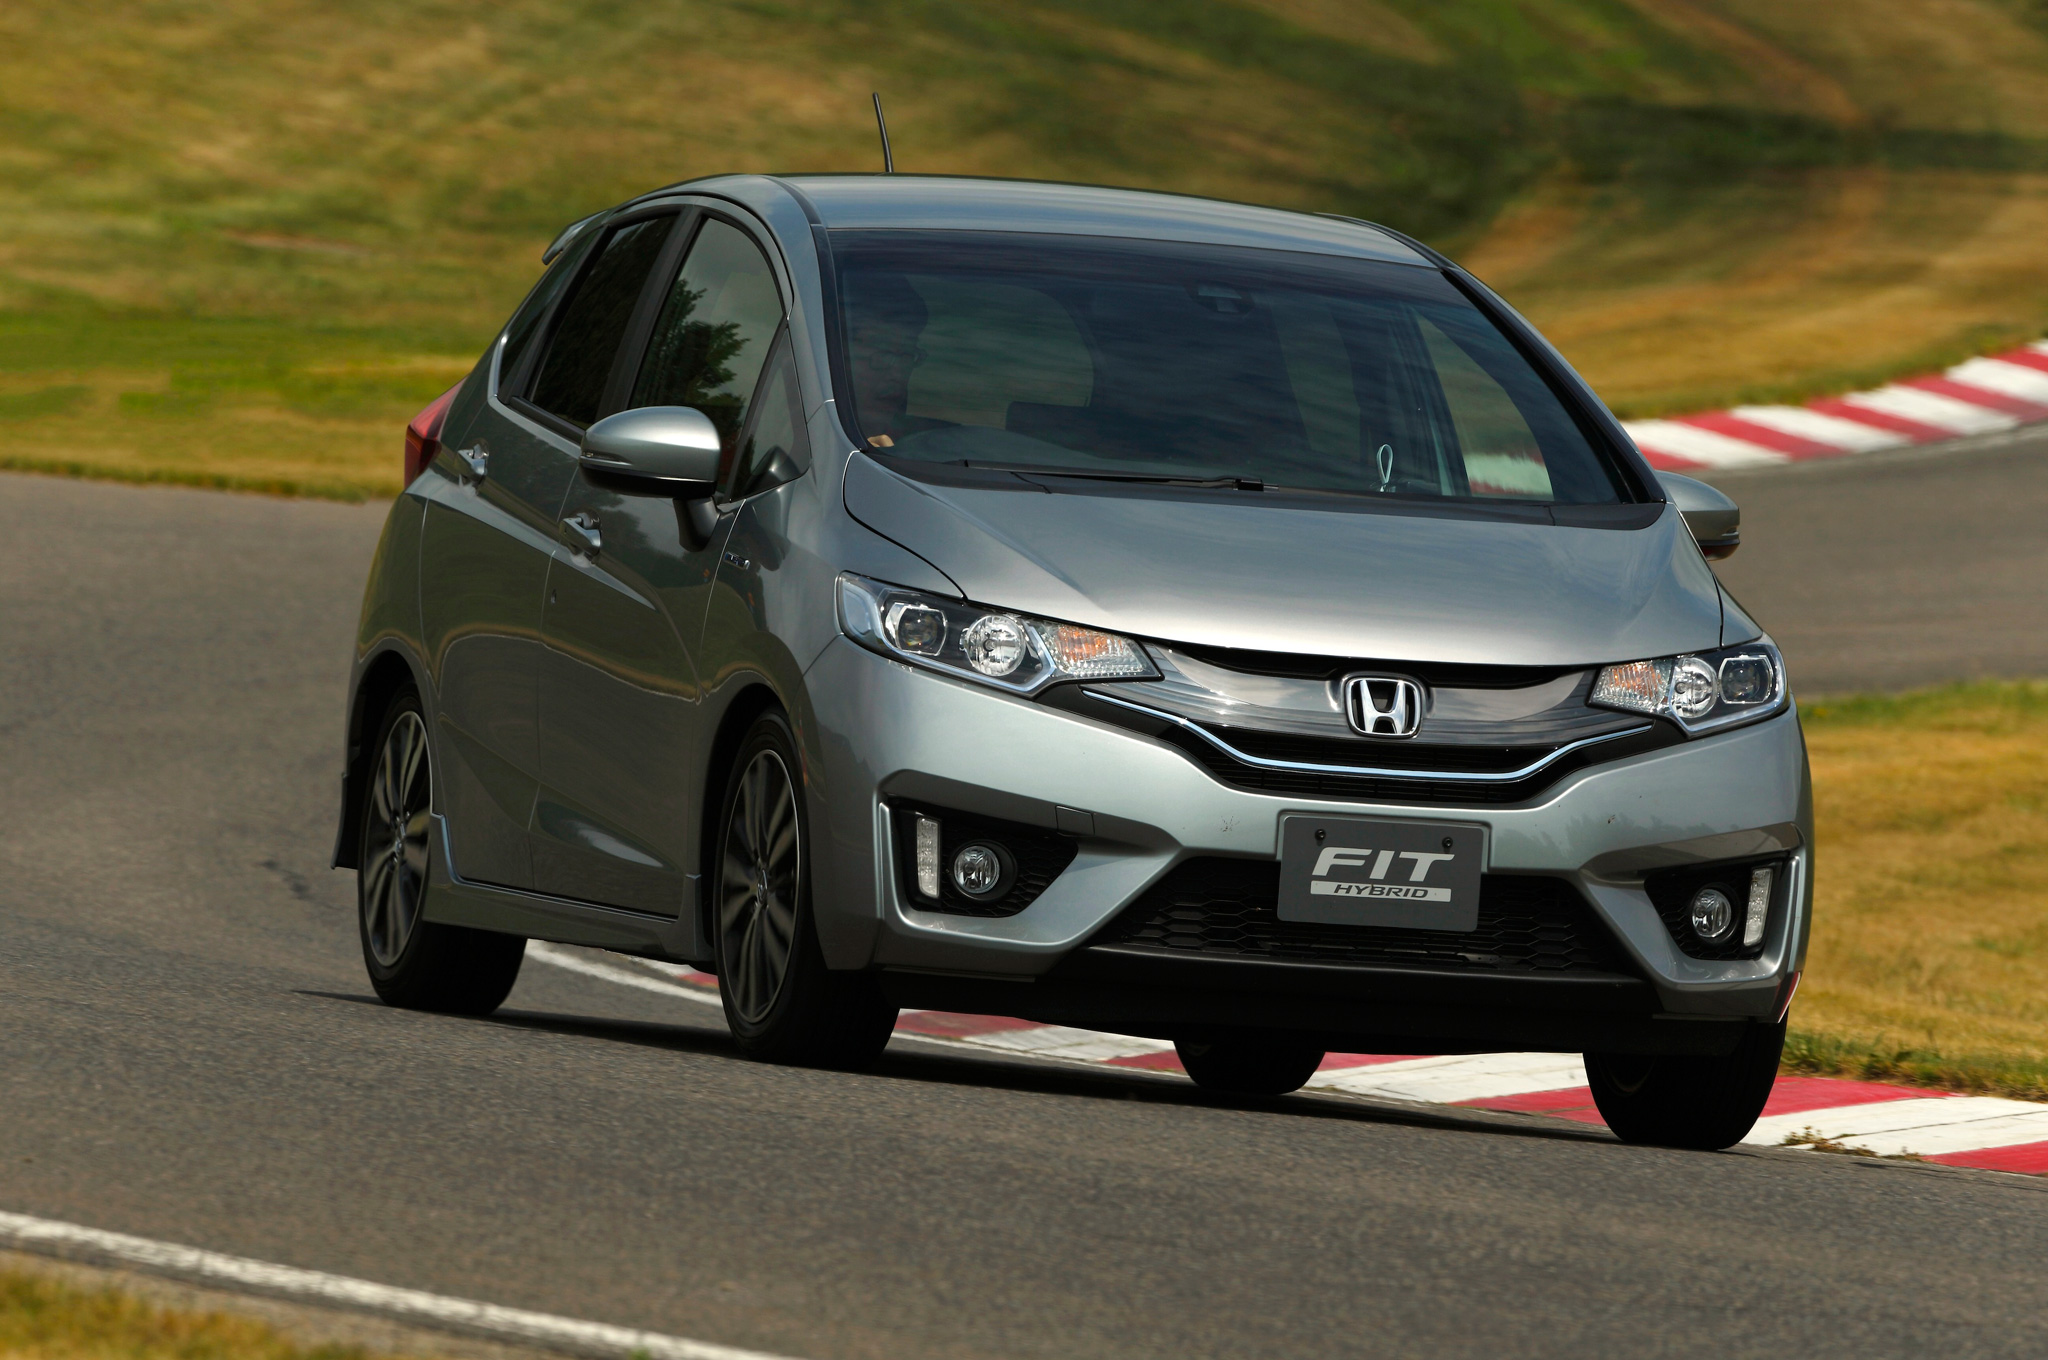 100 new Honda car dealerships by March 2016